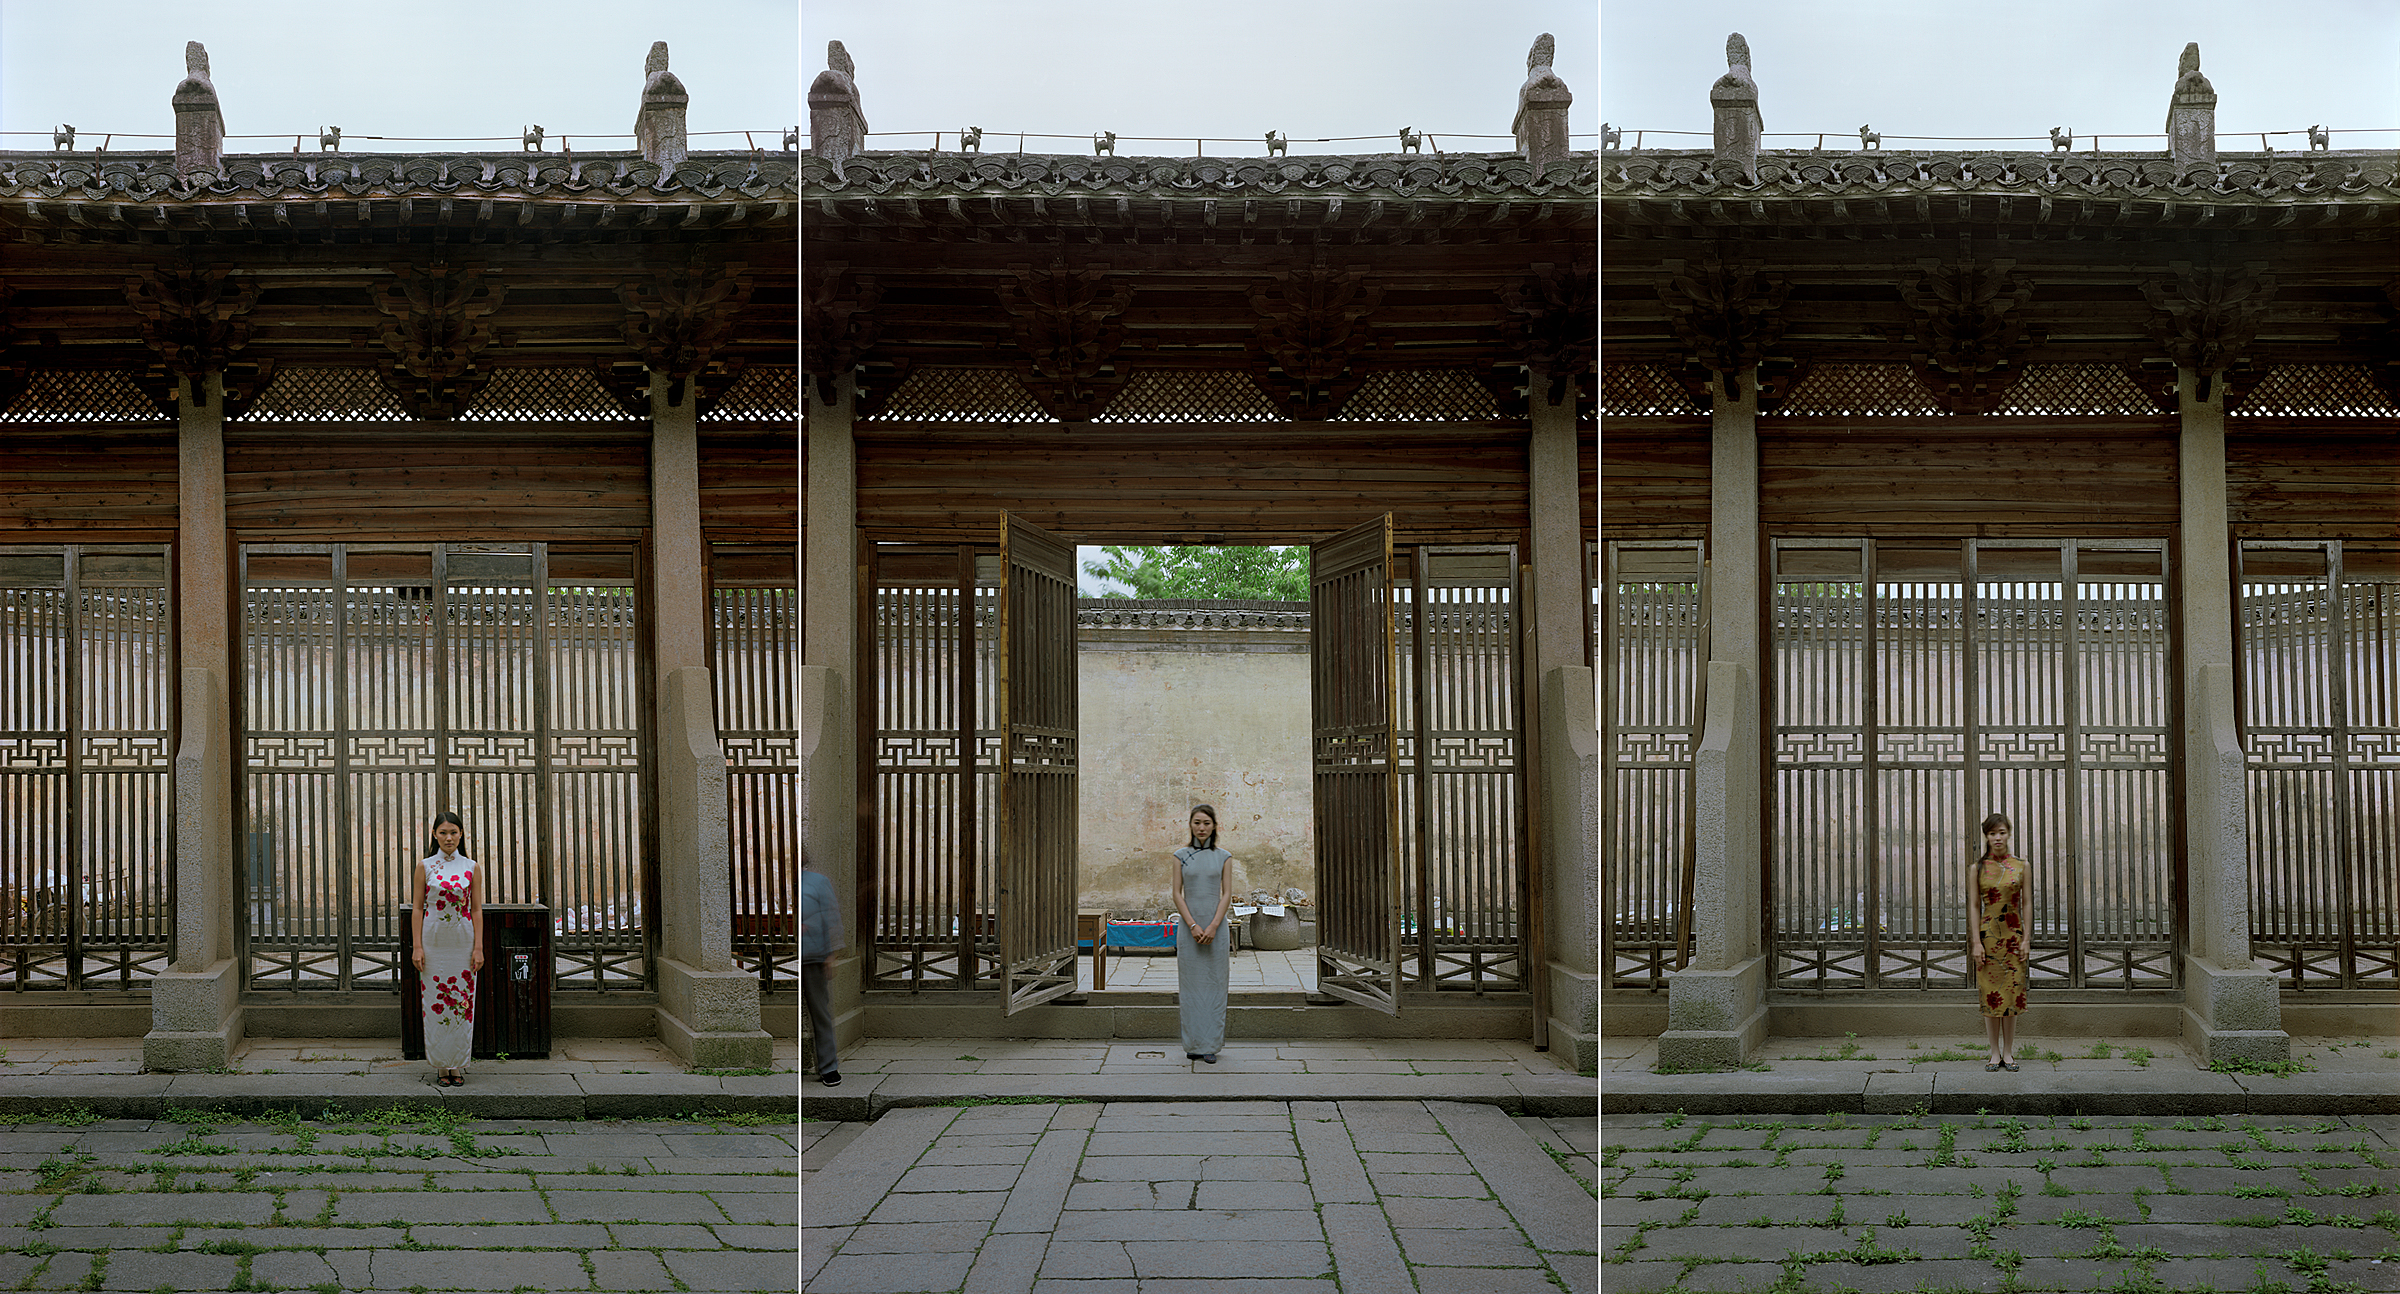 AnHui-Bao Lunge No. 1 (Double Rhapsody Series), 2011, 47.2 x 87.4 inches, Chromogenic photograph